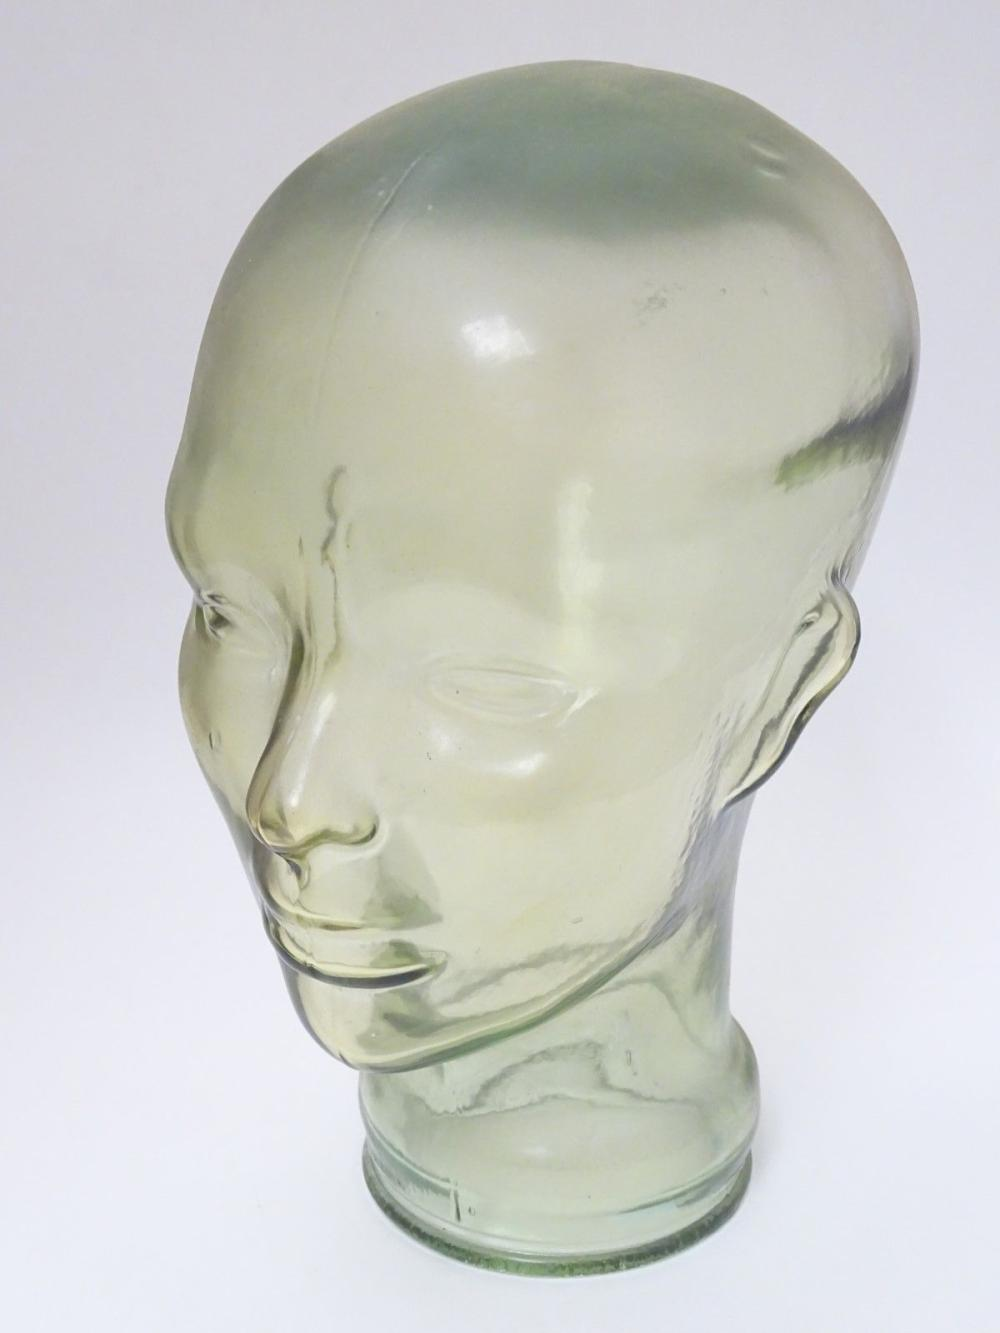 A mid- late 20thC Aqua-glass head, used for hat / wig advertising display, 11 1/2'' high